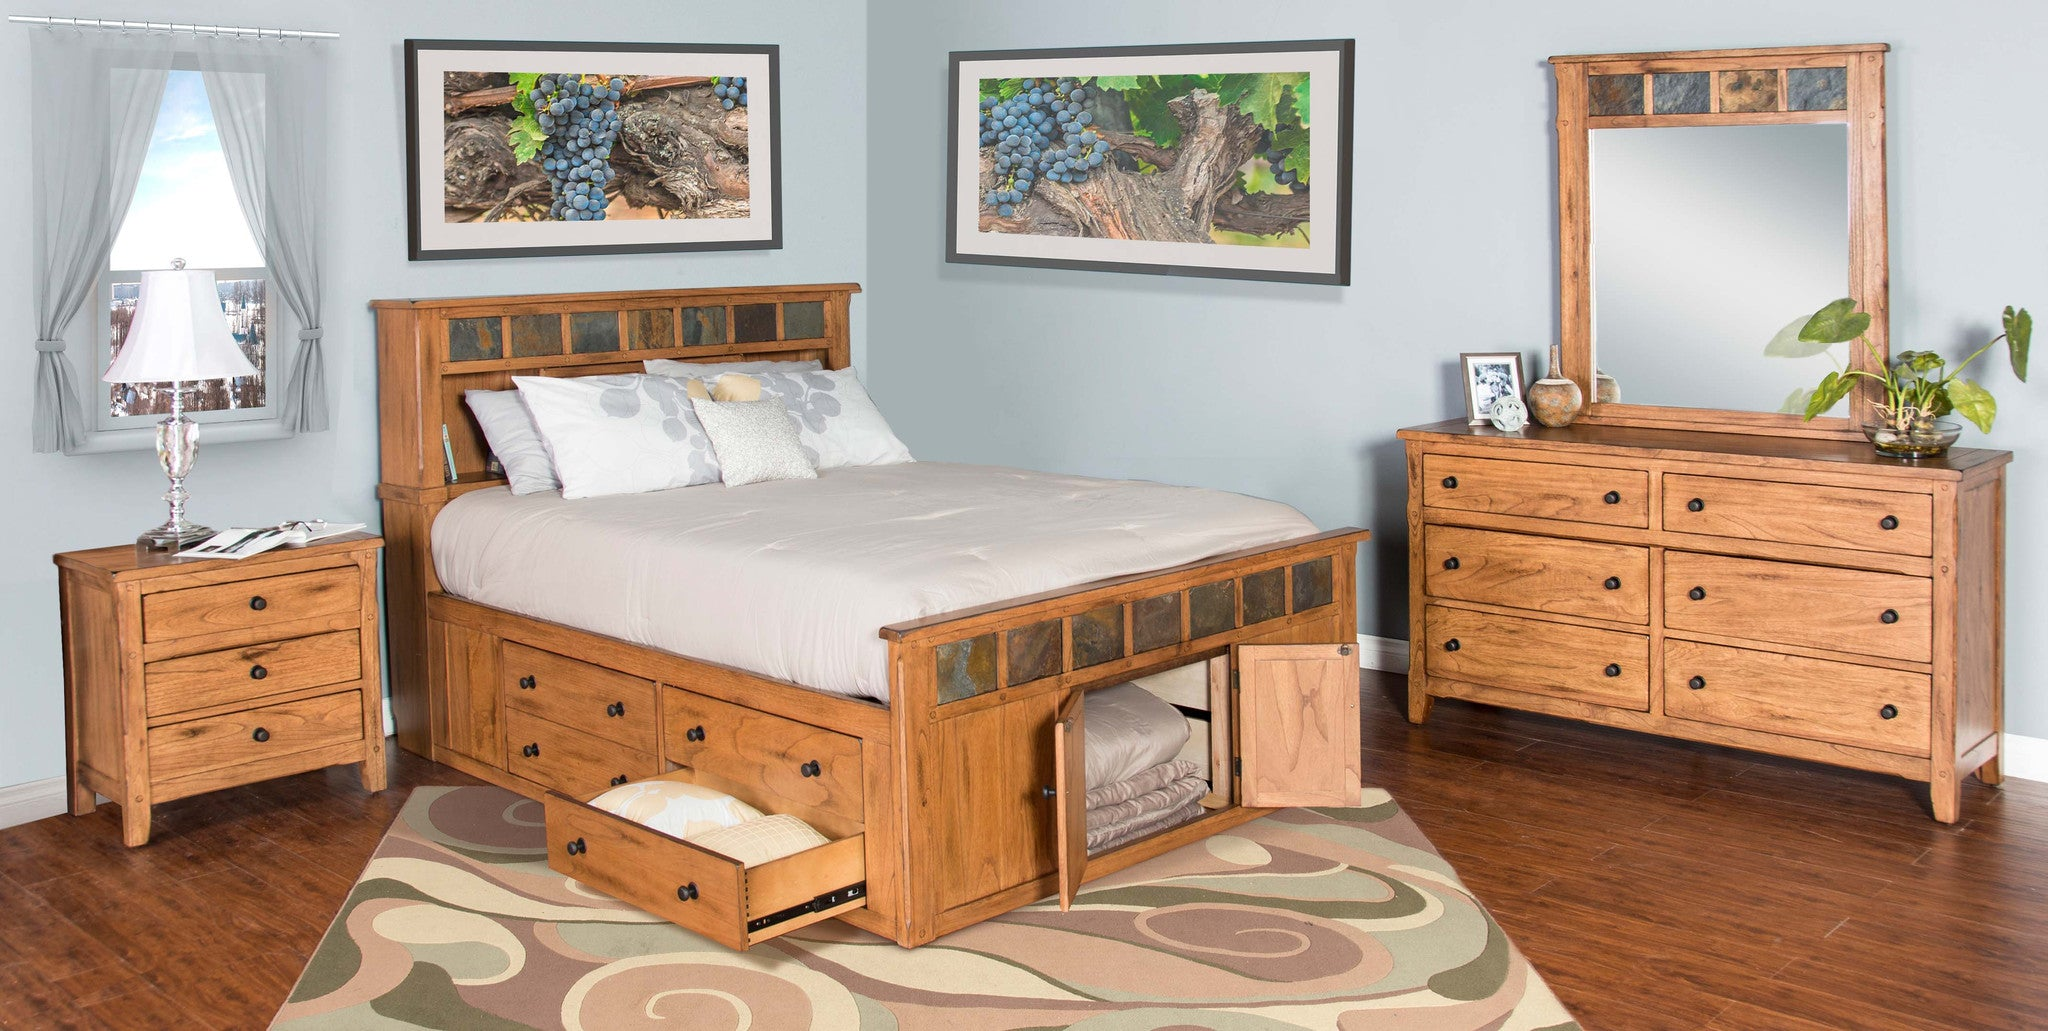 Sedona Rustic Petite Storage Bedroom Suite   Queen Size. Bedroom Suites